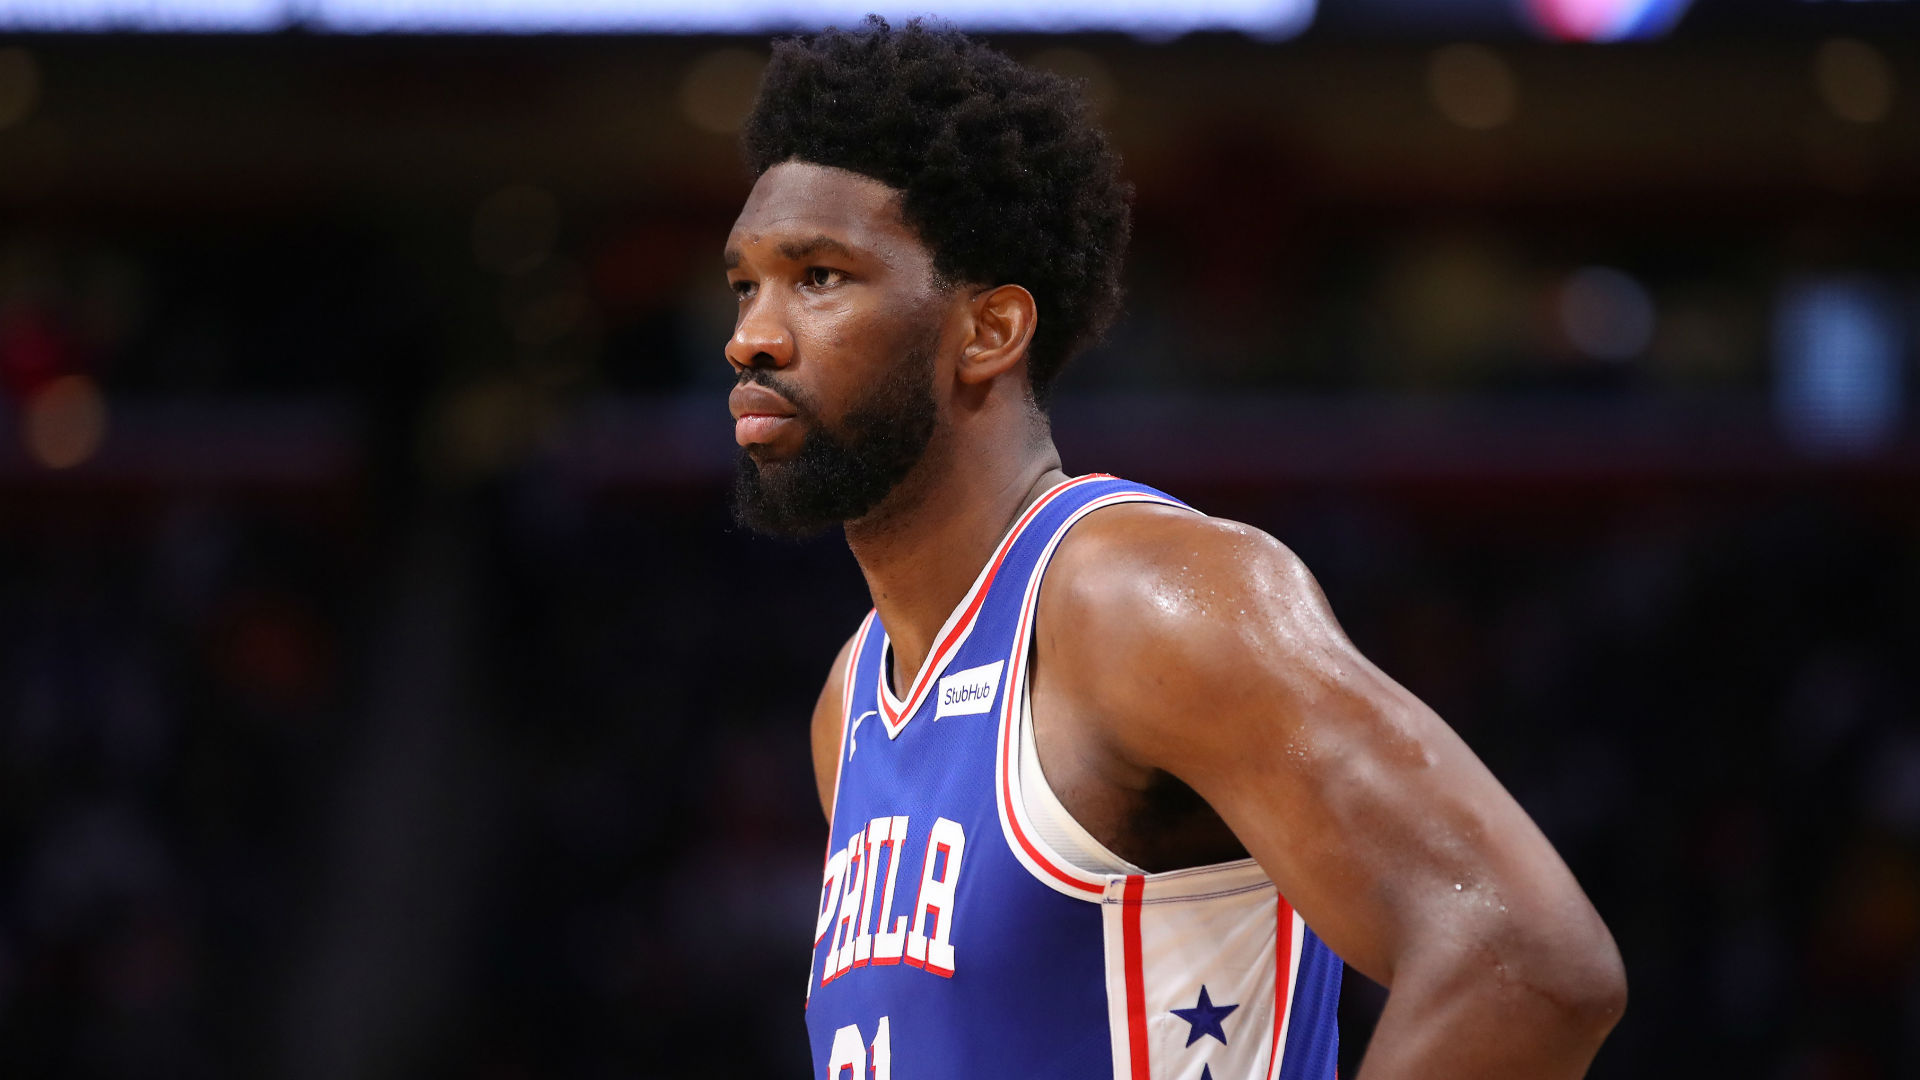 The Philadelphia 76ers lost on the road again on Wednesday and that was not their only setback, with Joel Embiid going off injured.